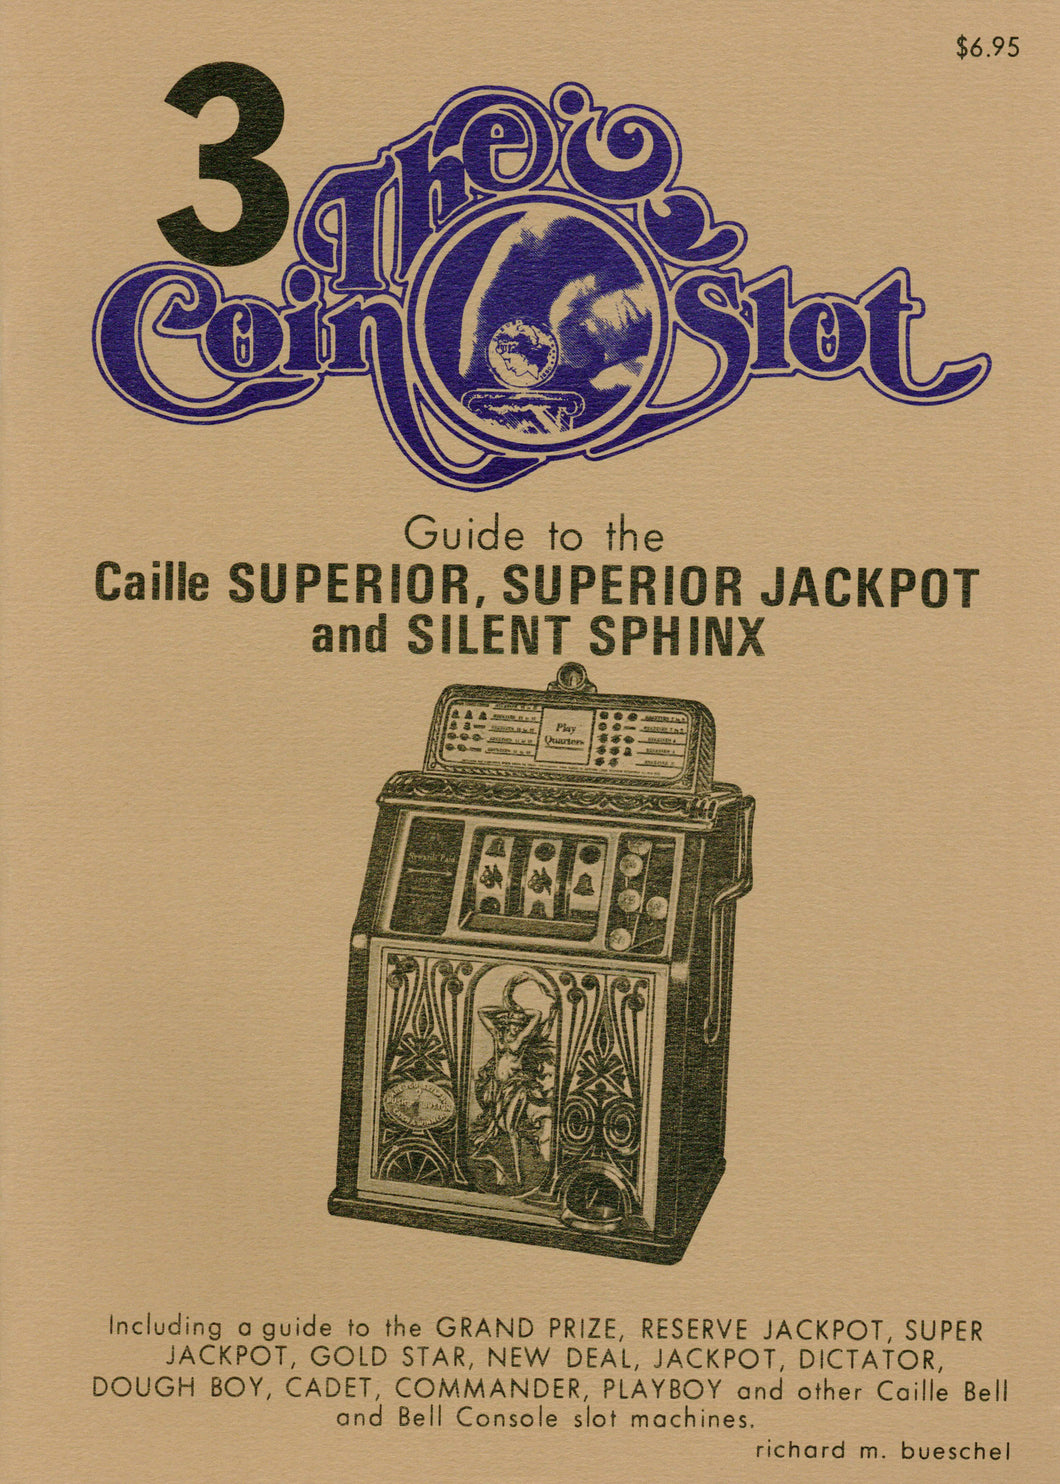 Coin Slot # 3. Guide to the Caille Superior, Superior Jackpot and Silent Sphinx